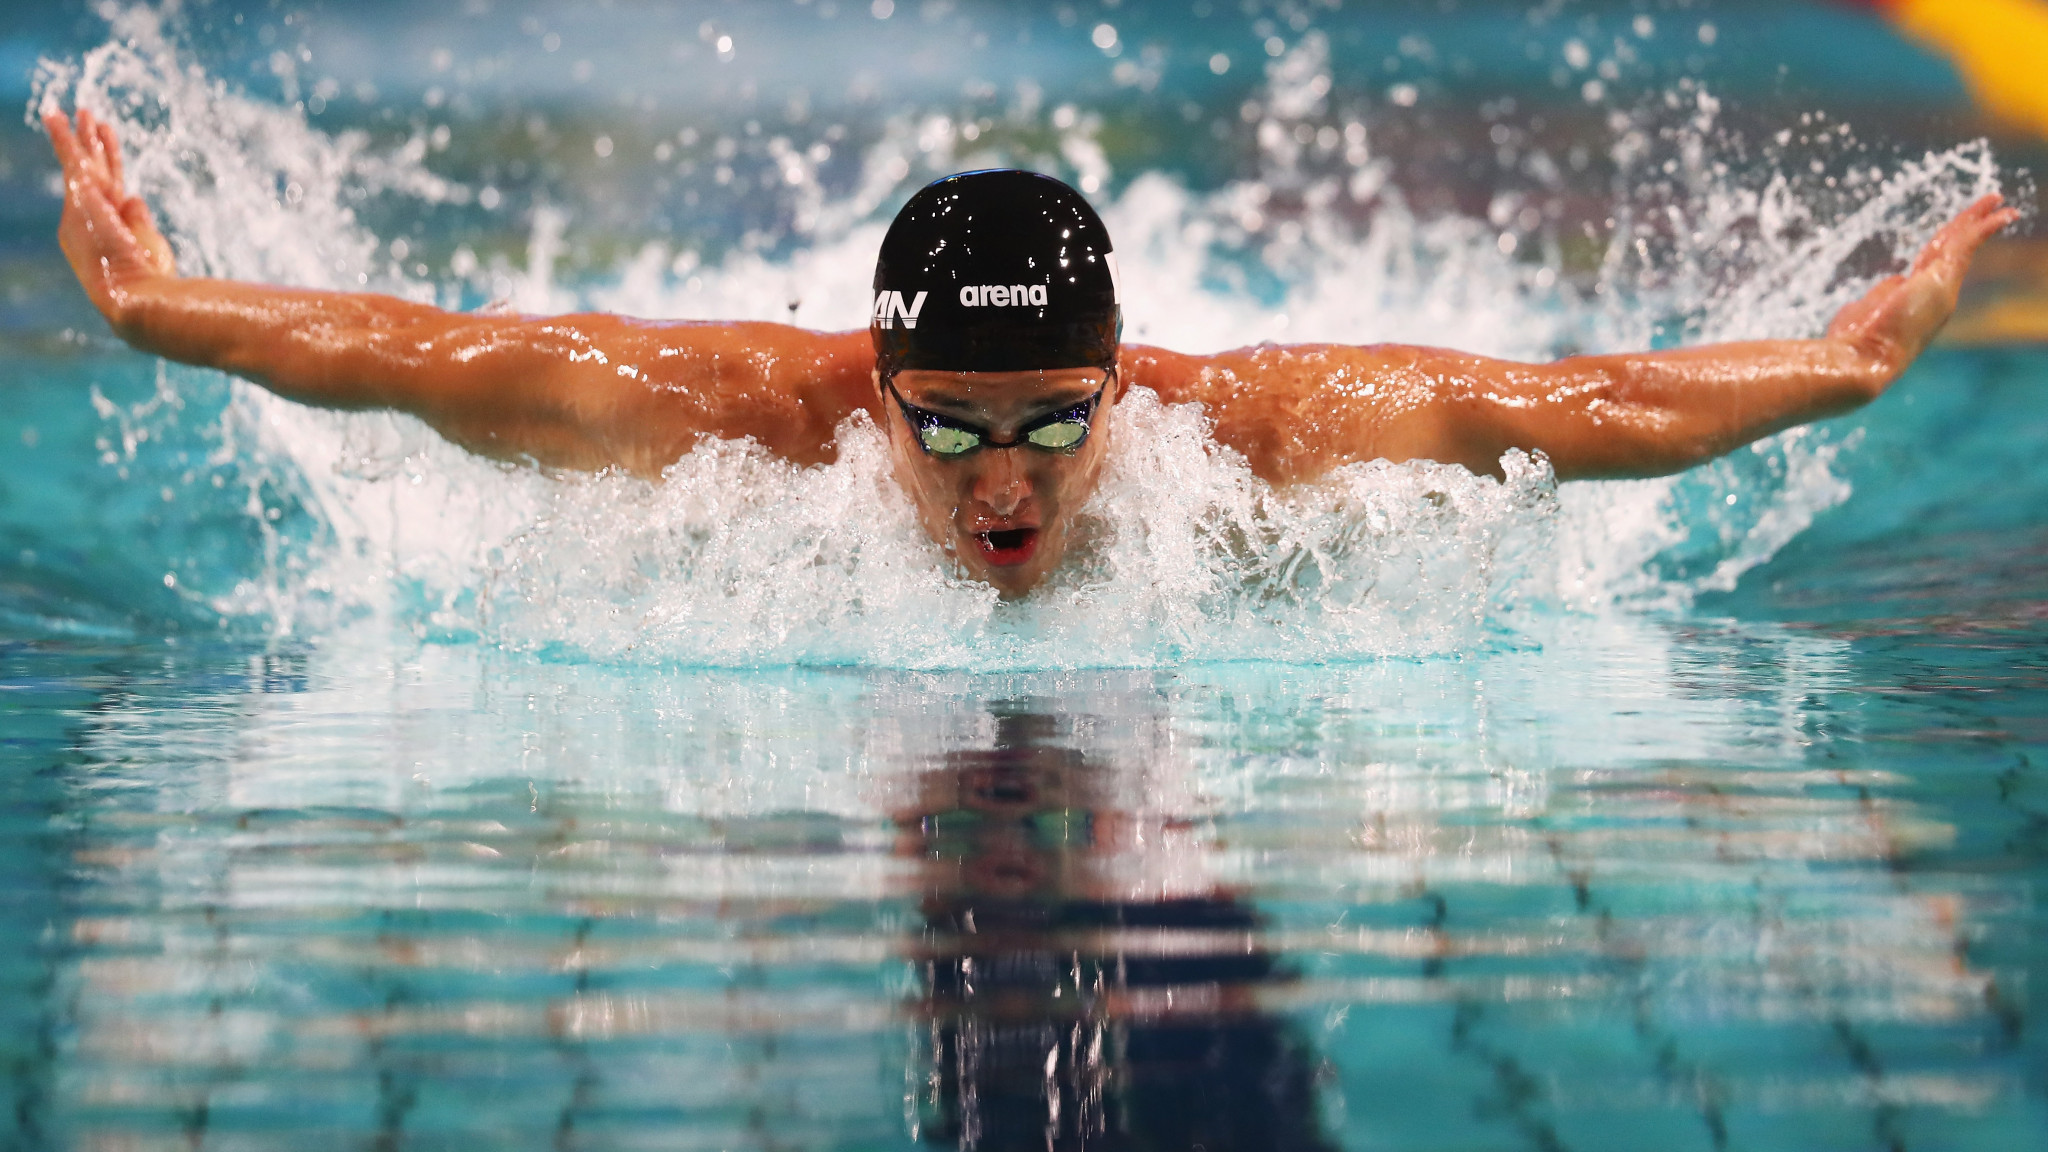 Seto achieves FINA World Cup record time in Eindhoven